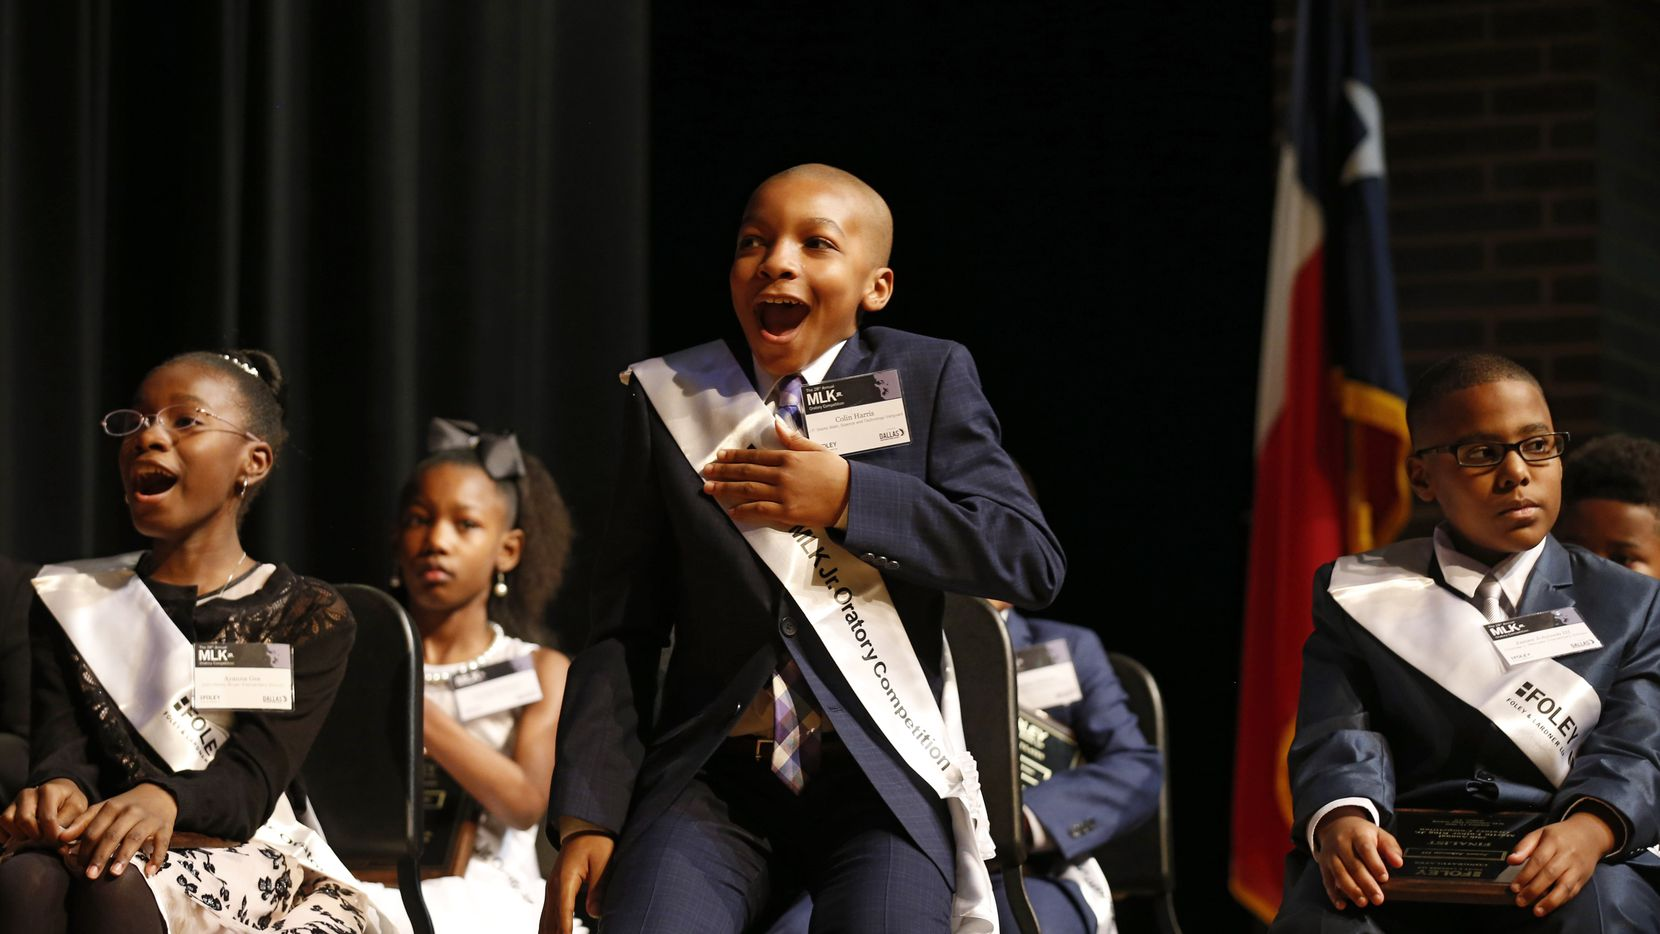 """Colin Harris of J.P. Starks Math, Science and Technology Vanguard reacts after his name is called to receive the first place award during the 28th annual MLK Jr. Oratory Competition at W.H. Adamson High School in Dallas on Friday, January 17, 2020. Eight students presented 3-5 minute speeches about the topic, """"What Would Dr. King's vision be for America in 2020."""" (Vernon Bryant/The Dallas Morning News)"""